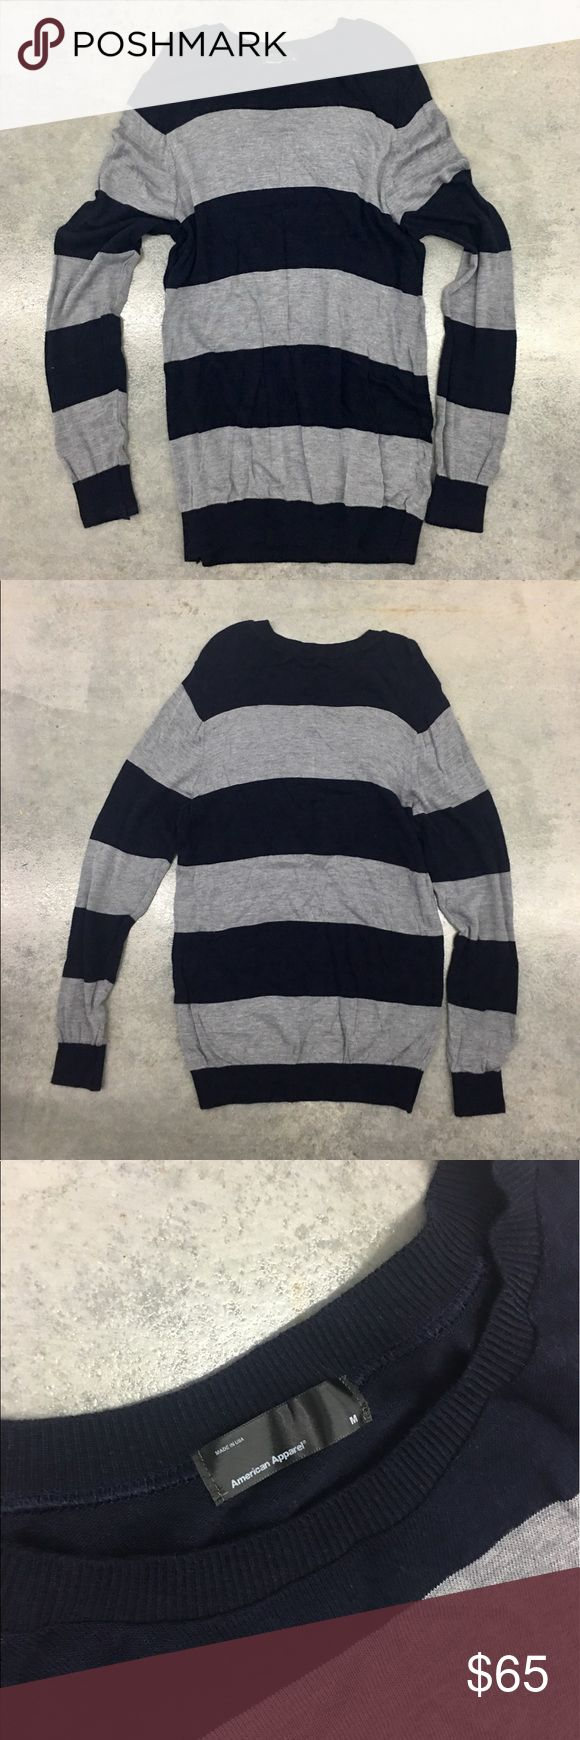 AA American apparel Stripe Tunic sweater dress top ✨(❁´◡`❁) ωḙℓḉ✺Պḙ (❁´◡`❁)✨     🦋Description:    •Super soft gray/ navy striped fabric   •Long sleeve/ Crew neckline  •Tunic / mini dress length      Would be so cute for the fall/winter months worn with leggings and boots! Omg! Love ❤️      ✨     🦋 Brand: AA American Apparel (All Stores are closed now)    ✨    🦋Size: M    ✨    🦋Condition: Excellent Preowned shape. No holes or snags.      ✨   (please refer to all photos Don't hesitate to…